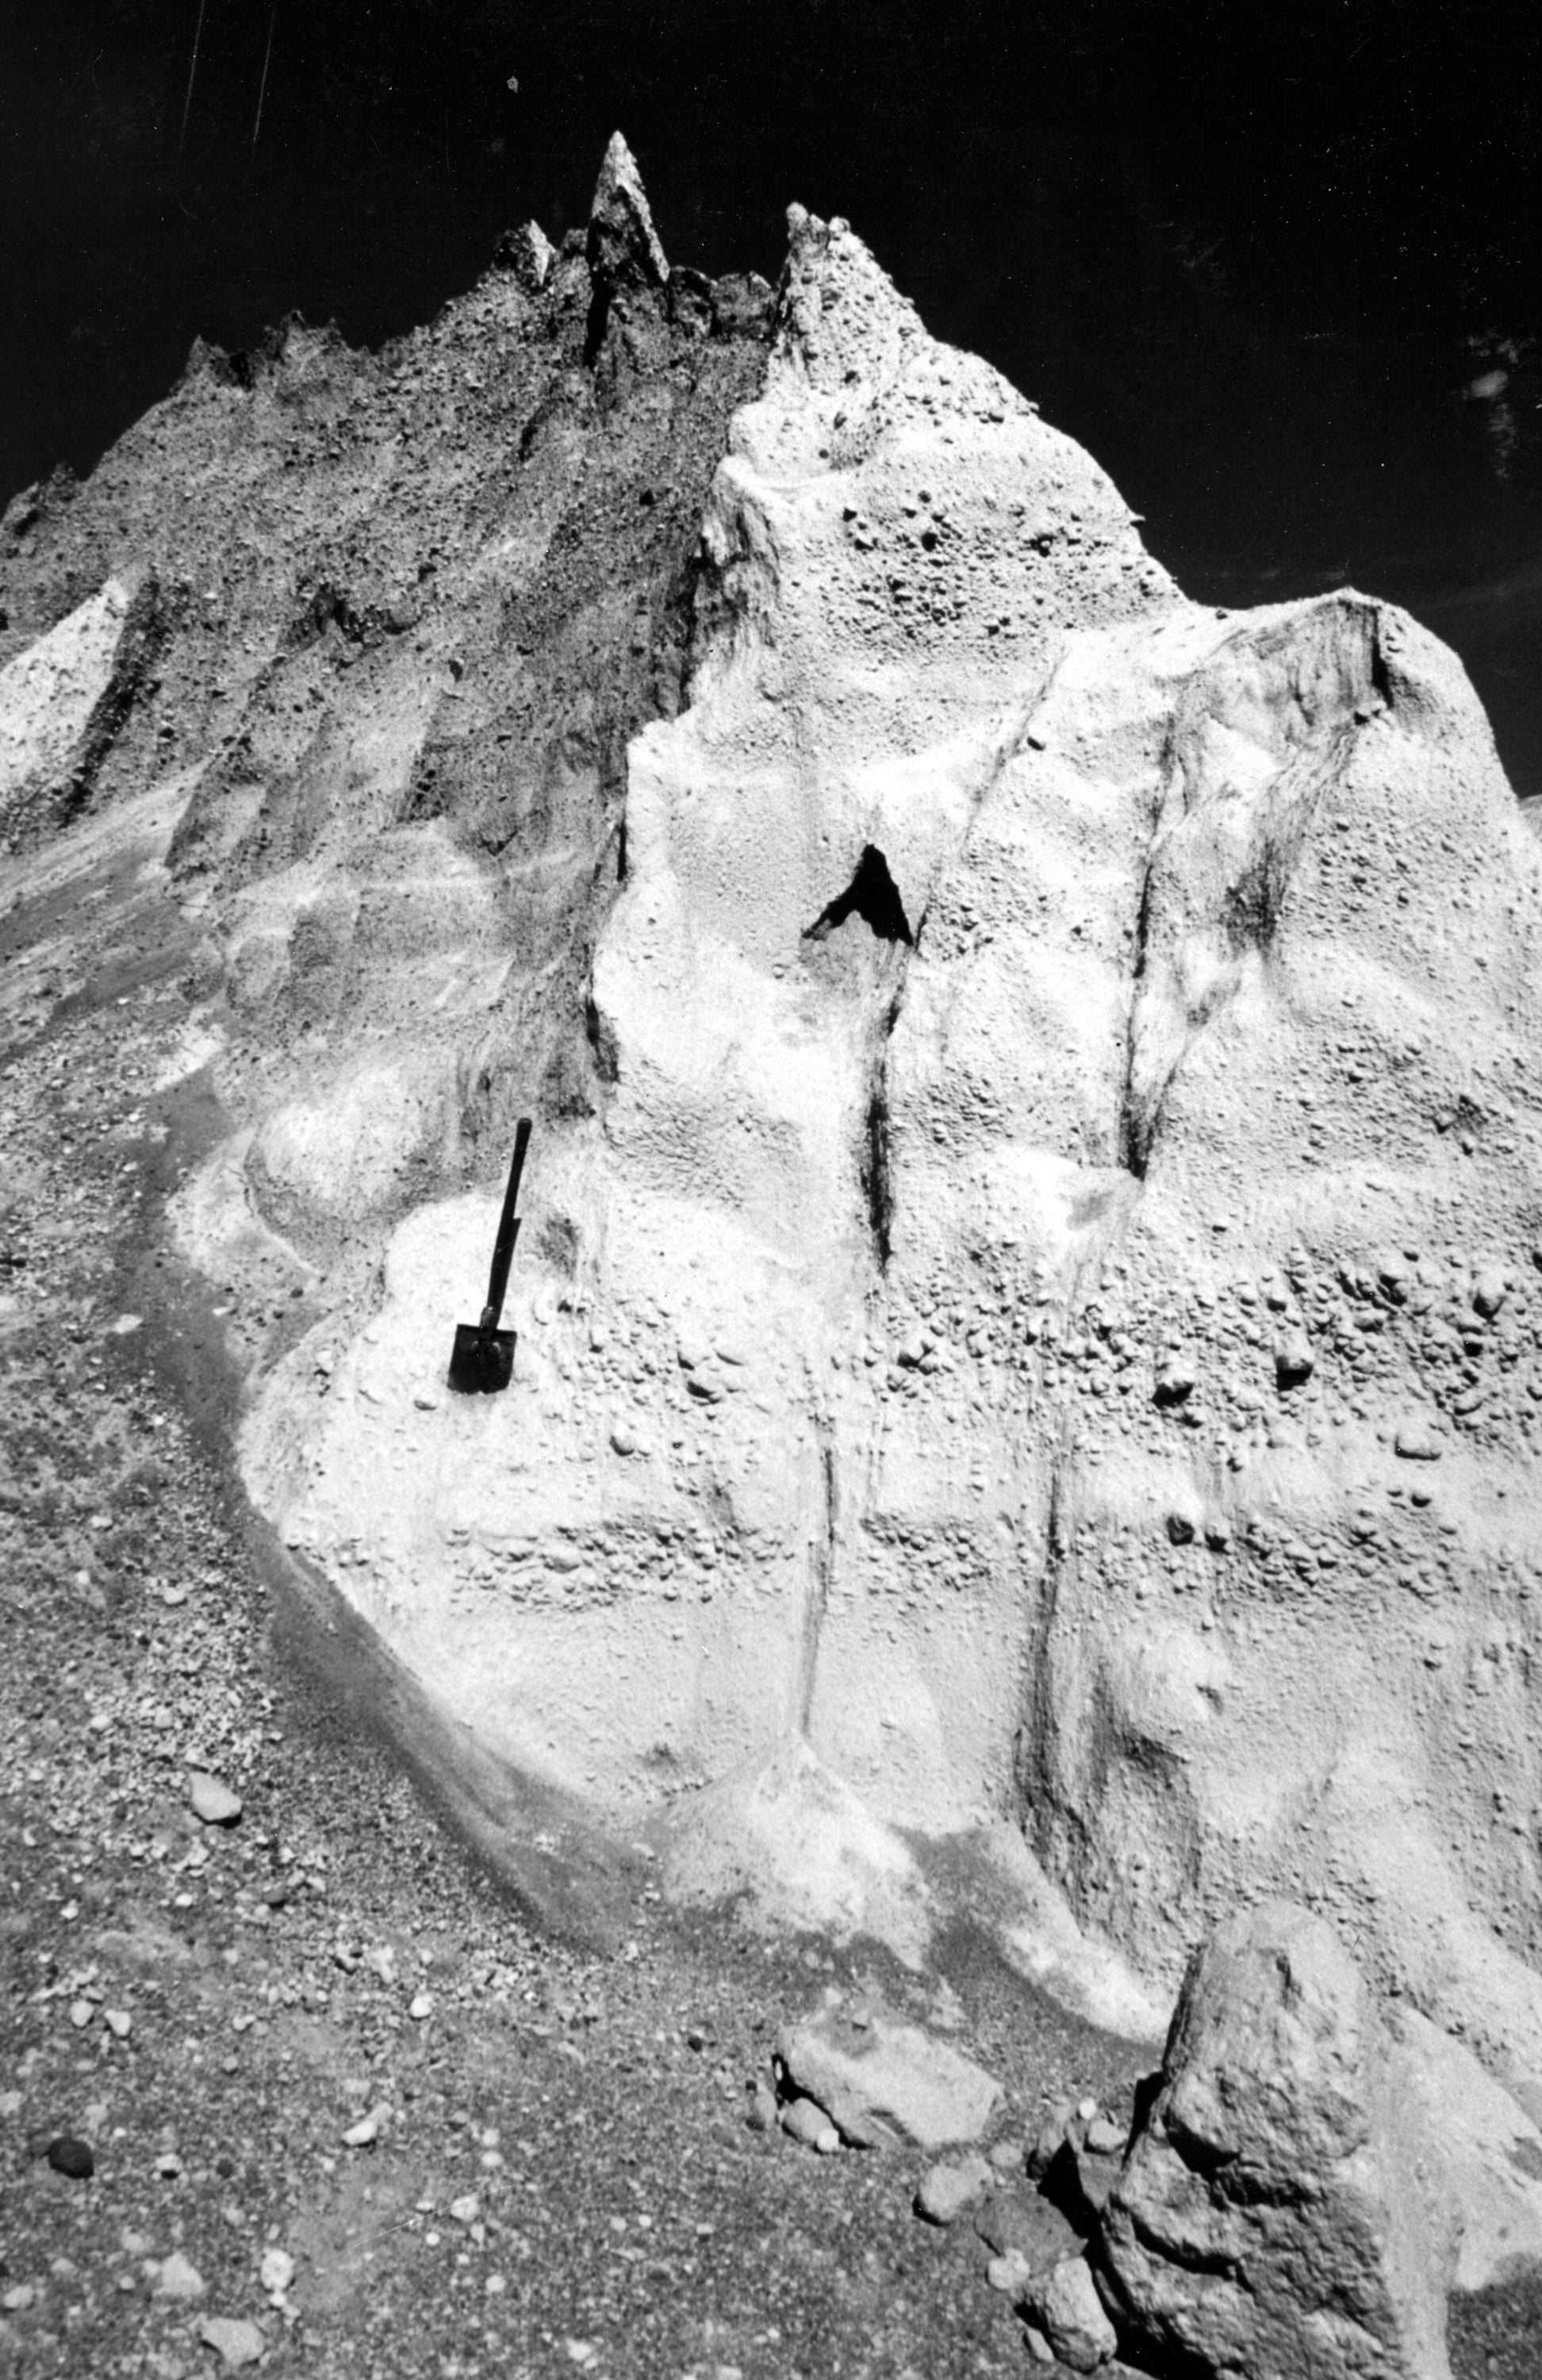 Black and white image shows a jagged ridge of deposits with a shovel for scale. The deposits are layered with fine and coarse layers.